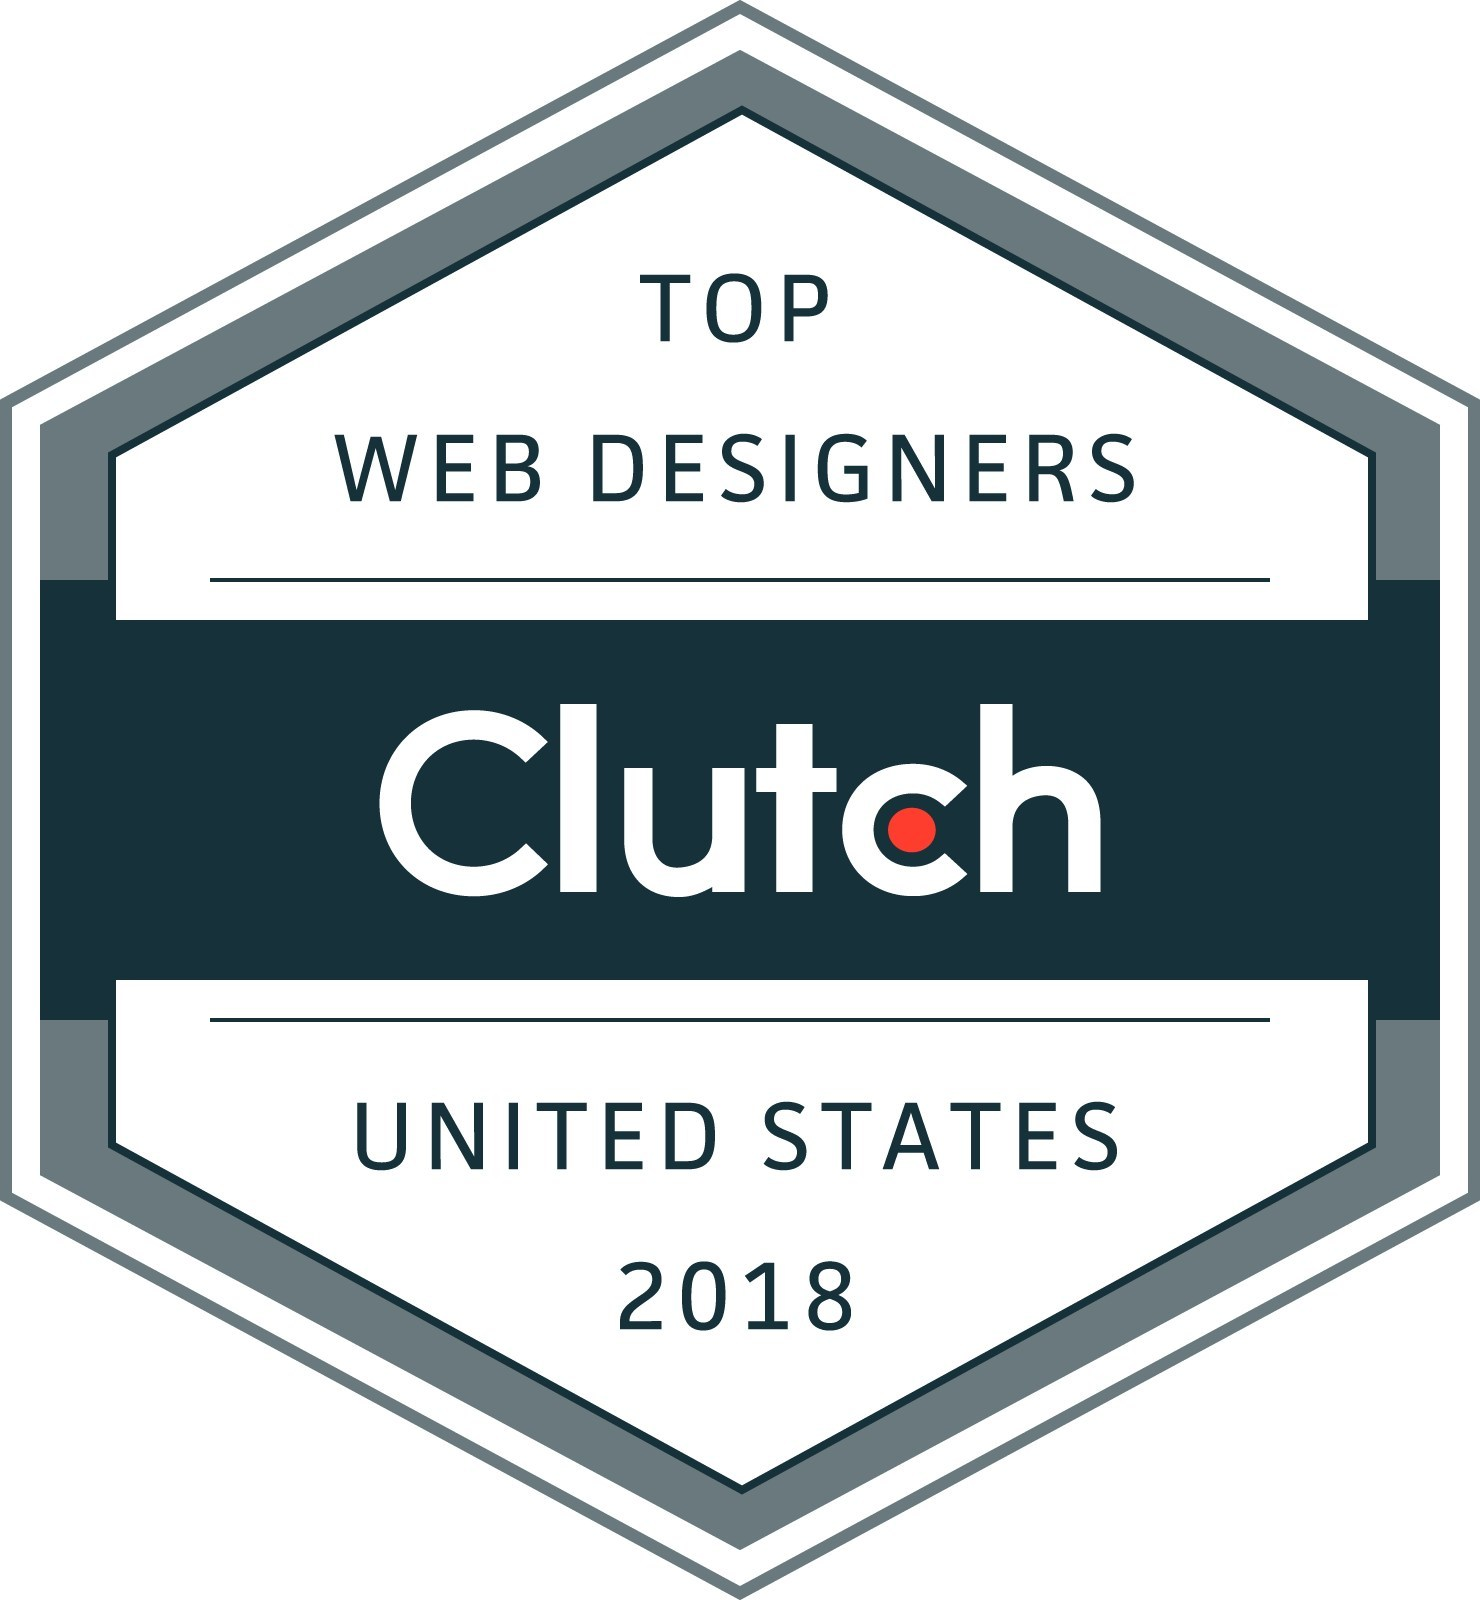 Top United States Web Designers 2018